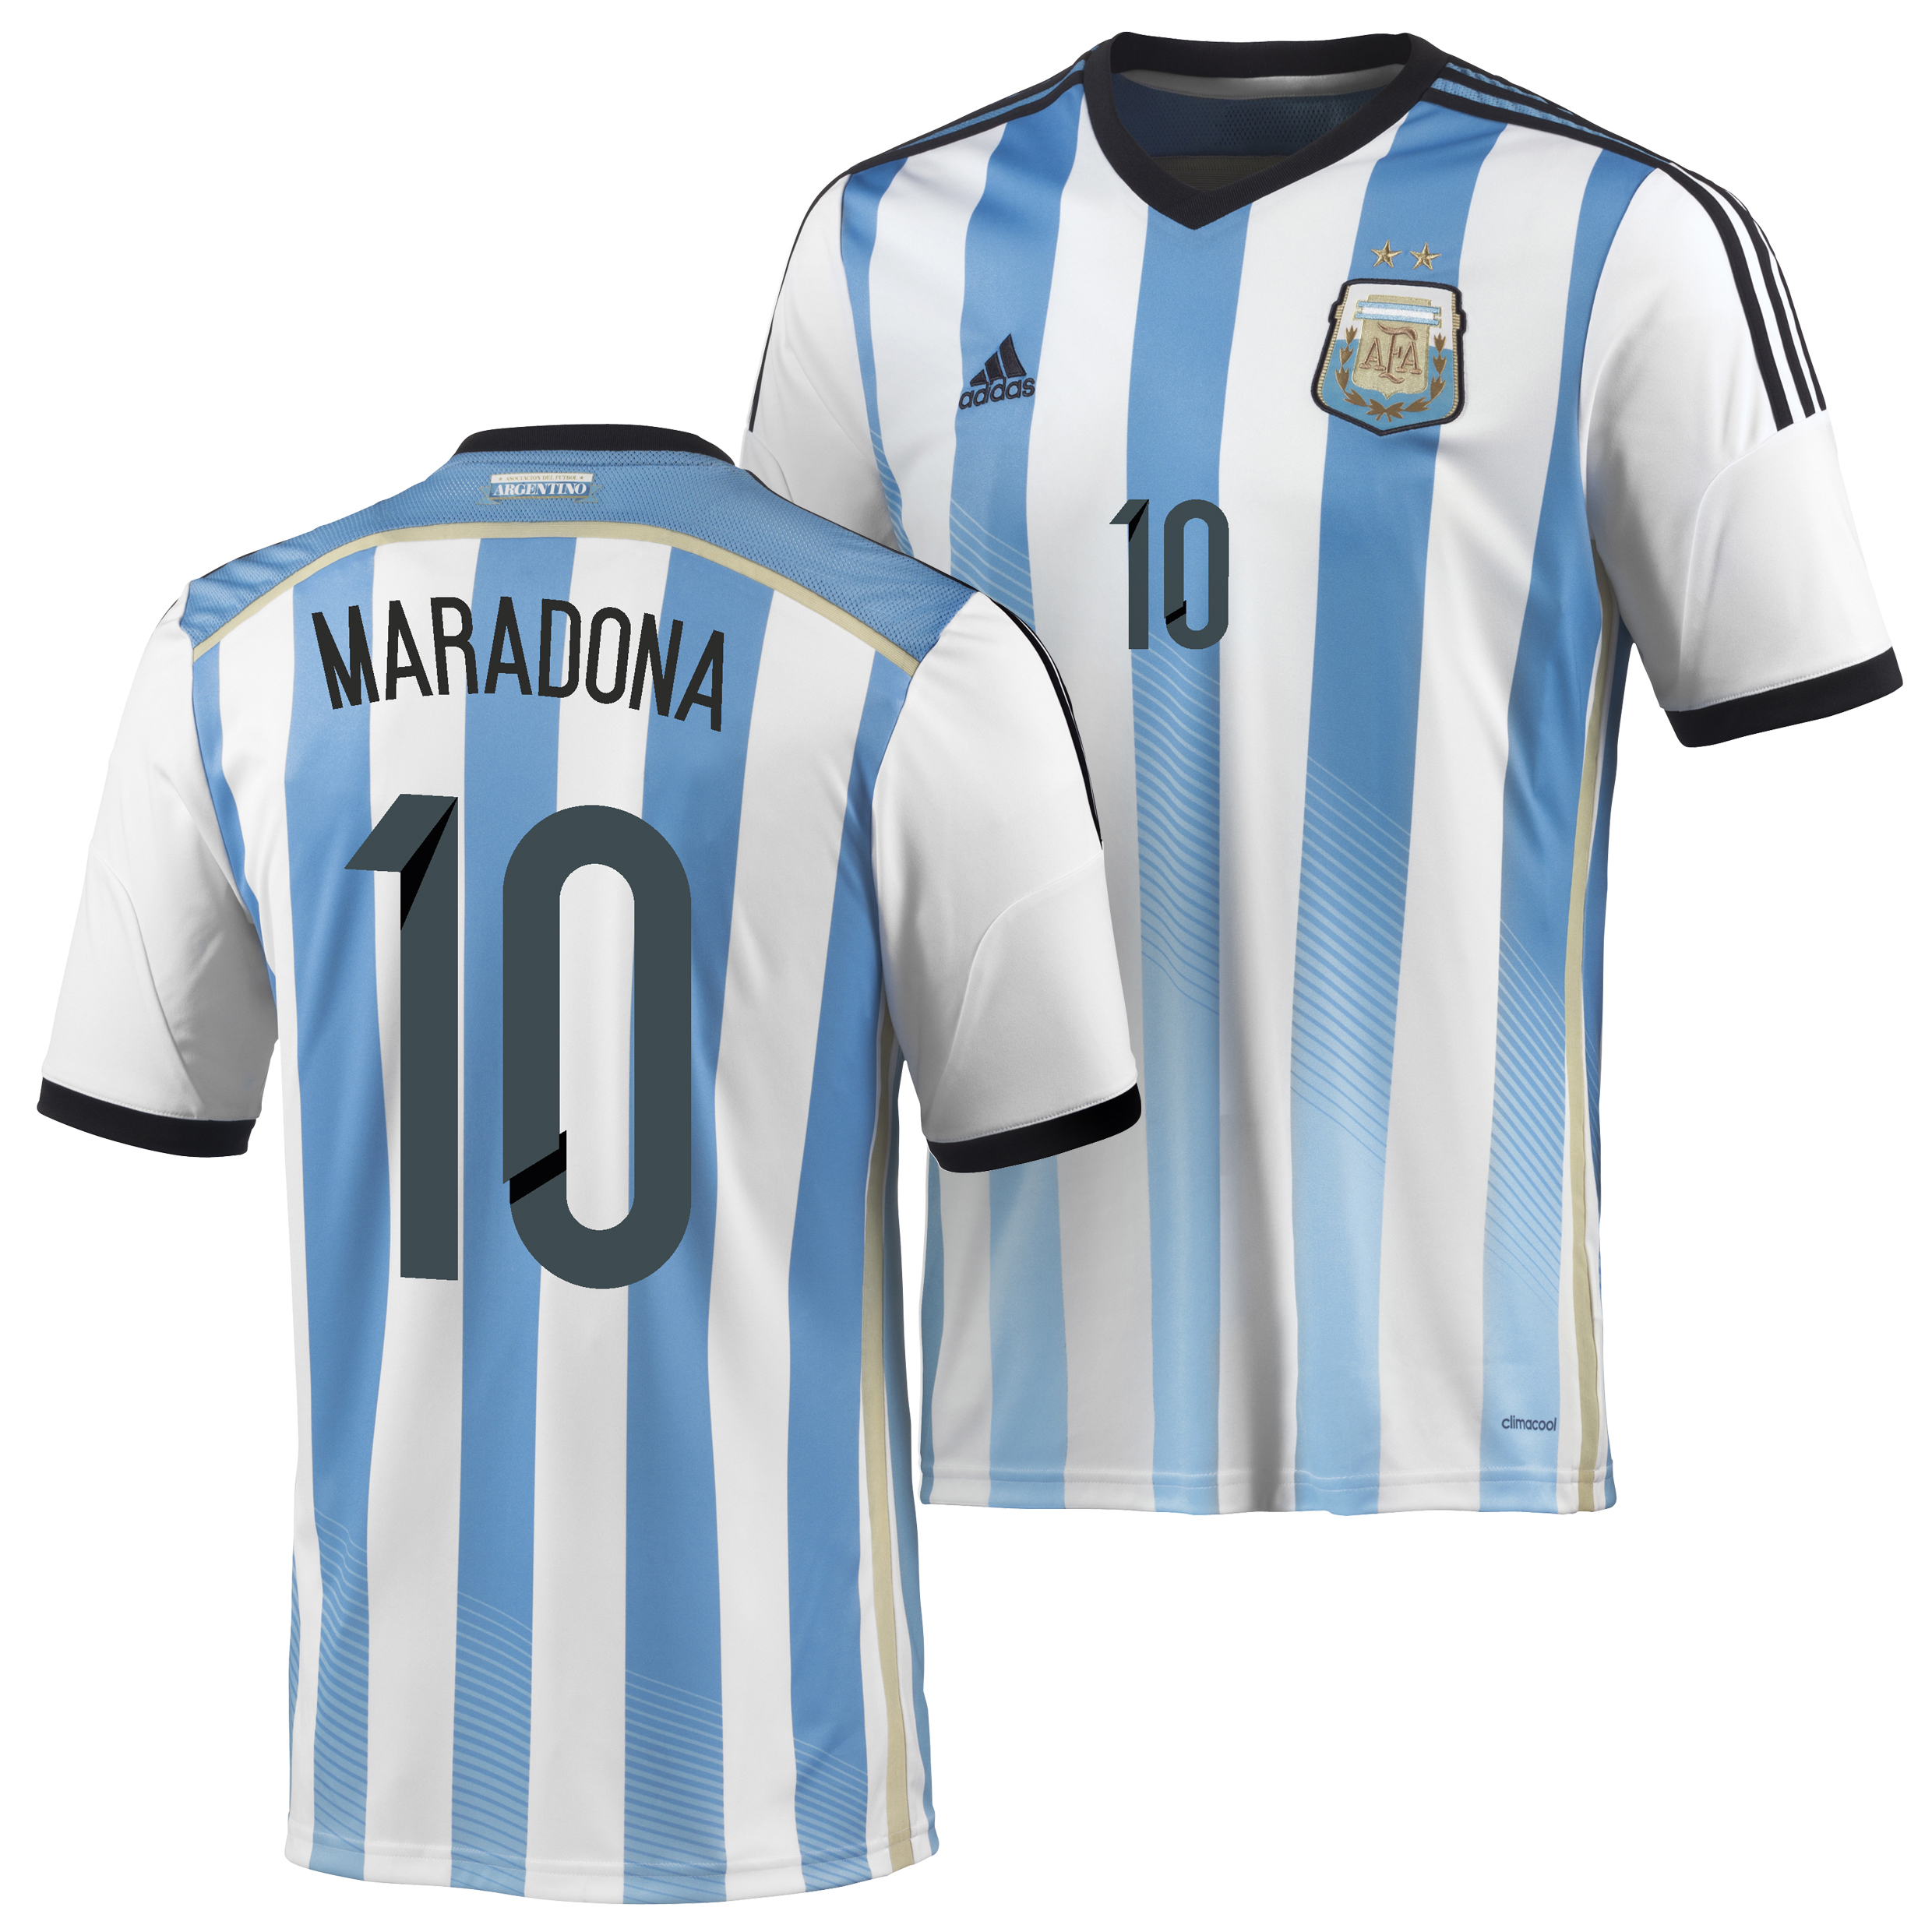 Argentina Home Shirt 2013/15 with Maradona 10 printing